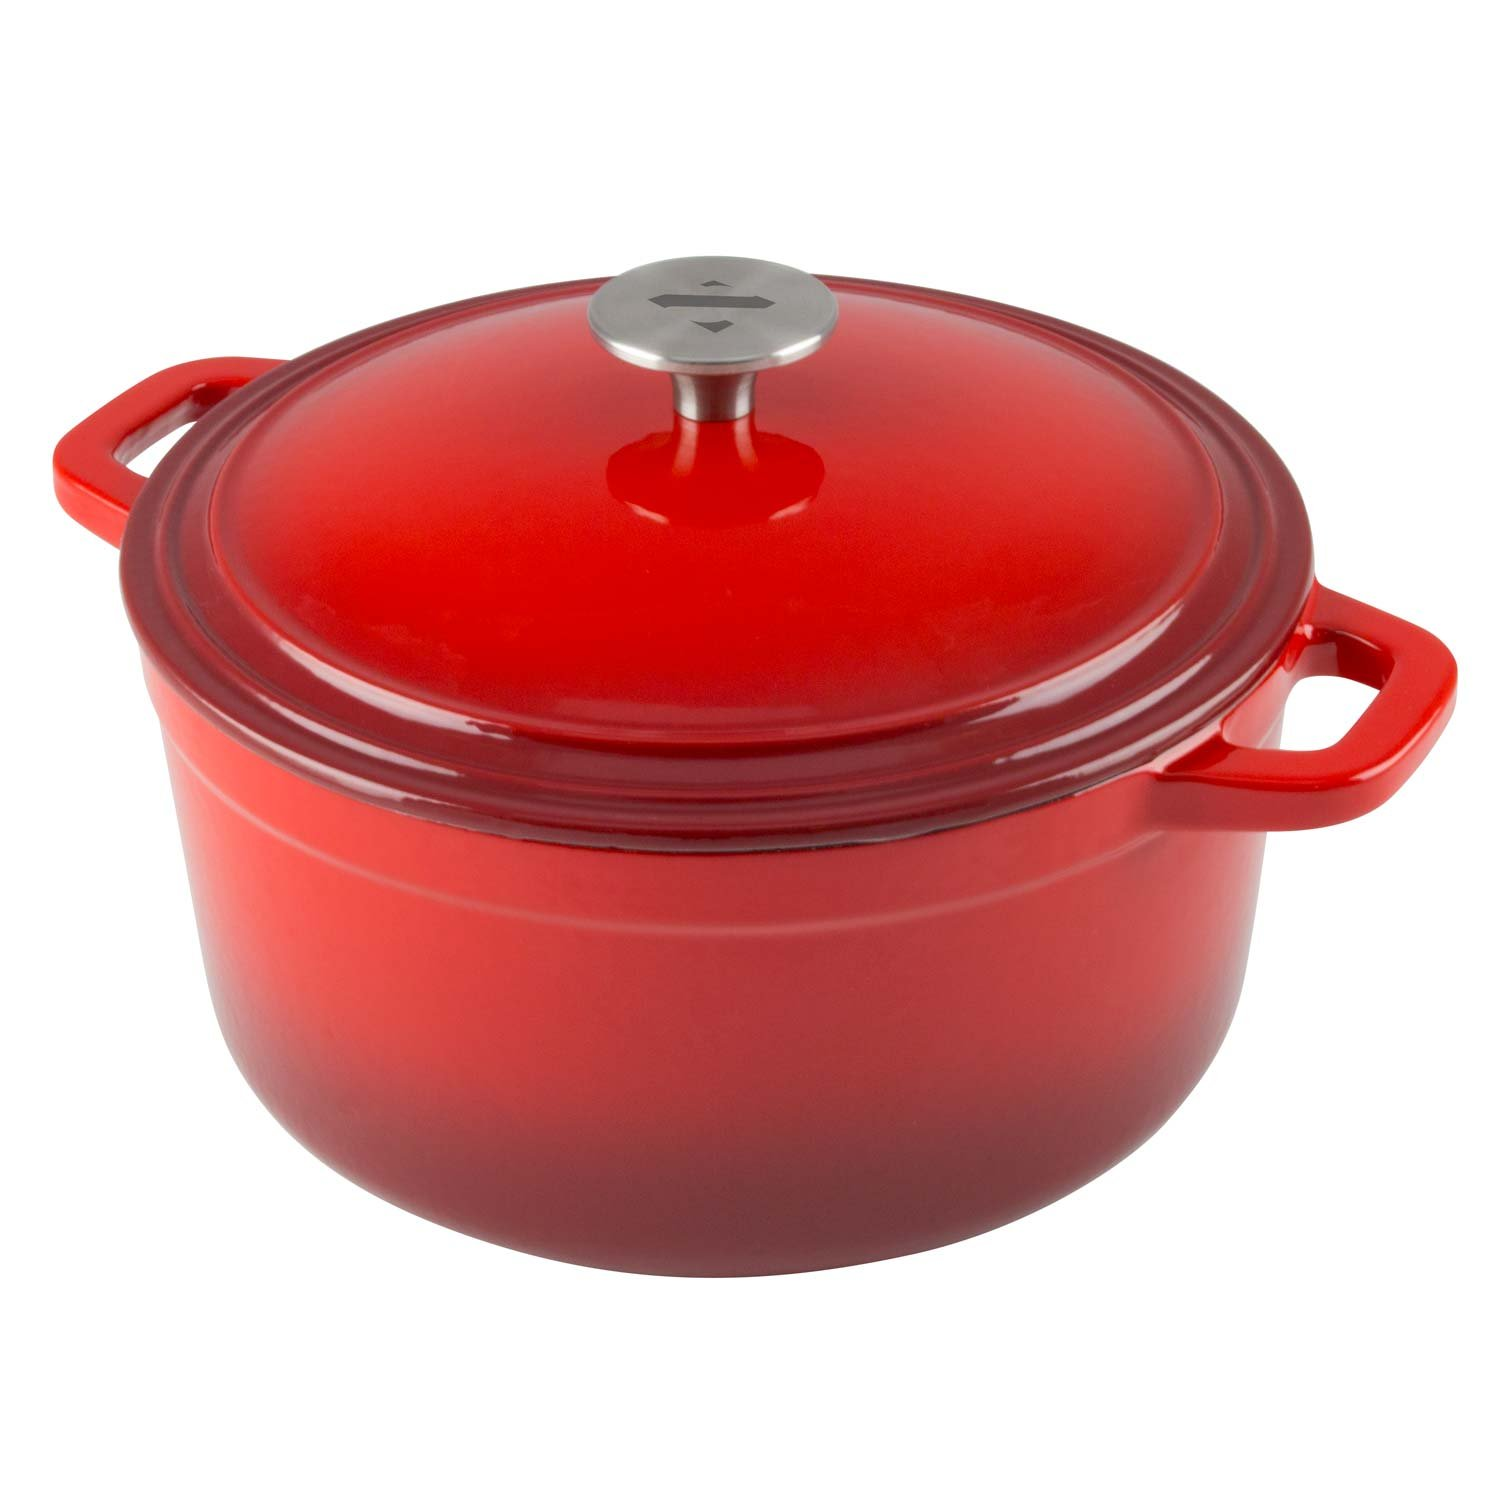 Amazon.com: Zelancio Cookware 6 Quart Cast Iron Enamel Covered ...